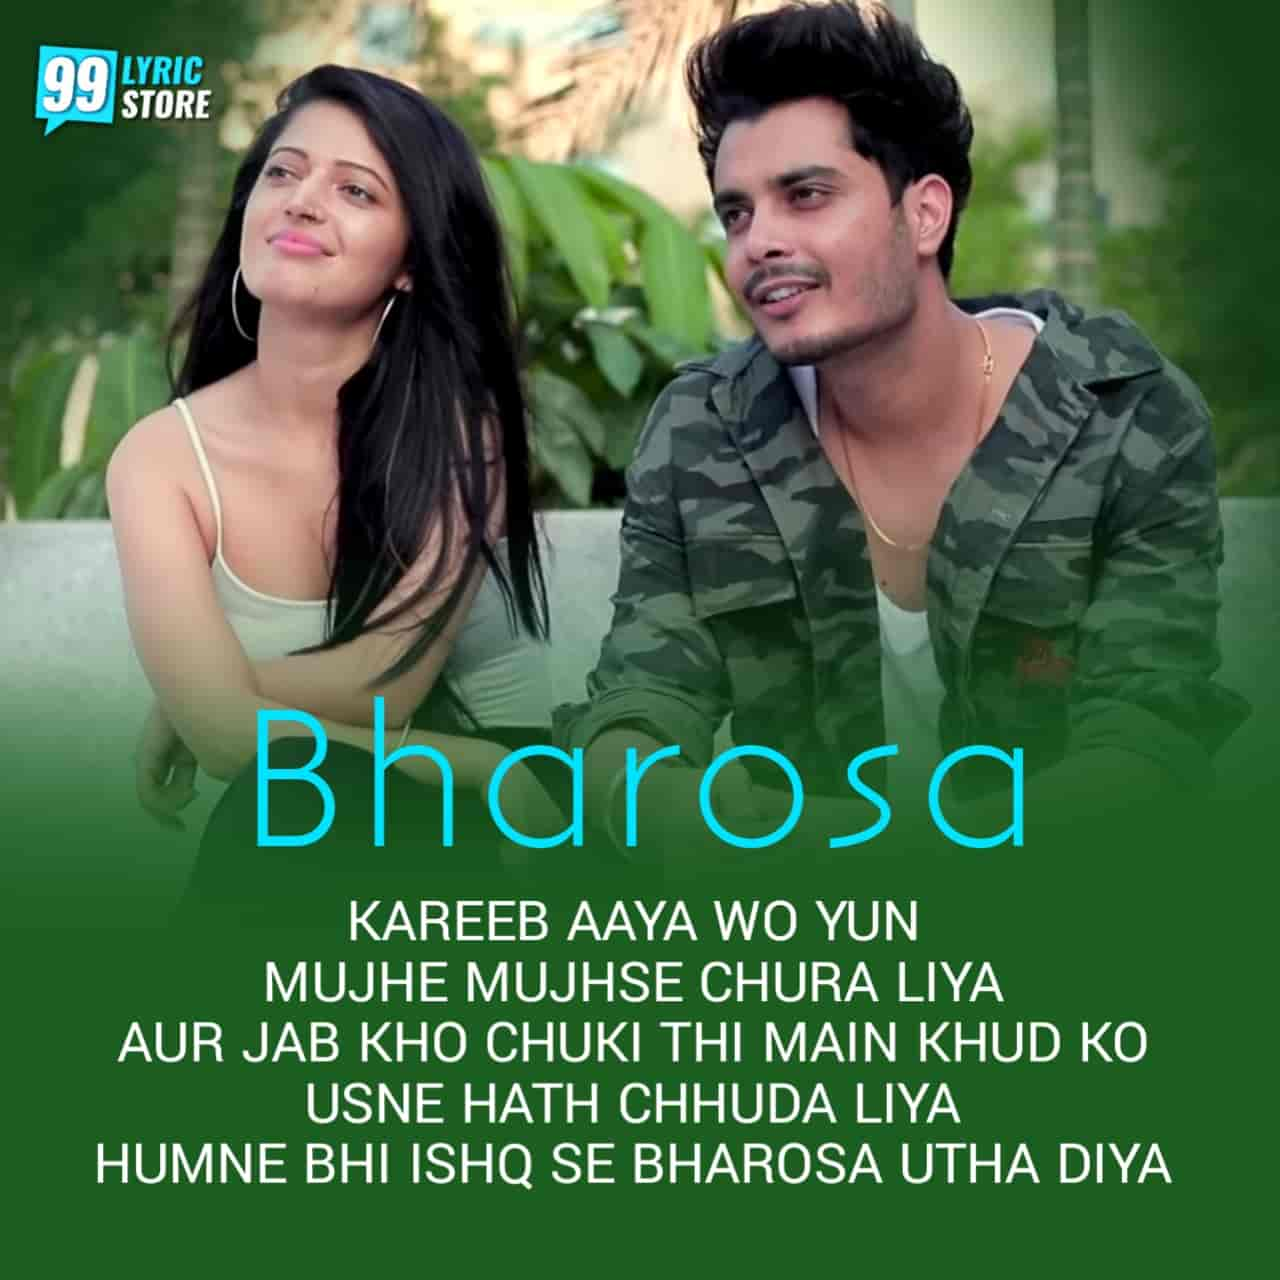 A new and beautiful Shayari 'Bharosa' written by Gurnazar Chattha and Charlie Chauhan, and performed also in this shayari video which make more catchy this shayari. This shayari is presented by Gurnazar Chattha official label.